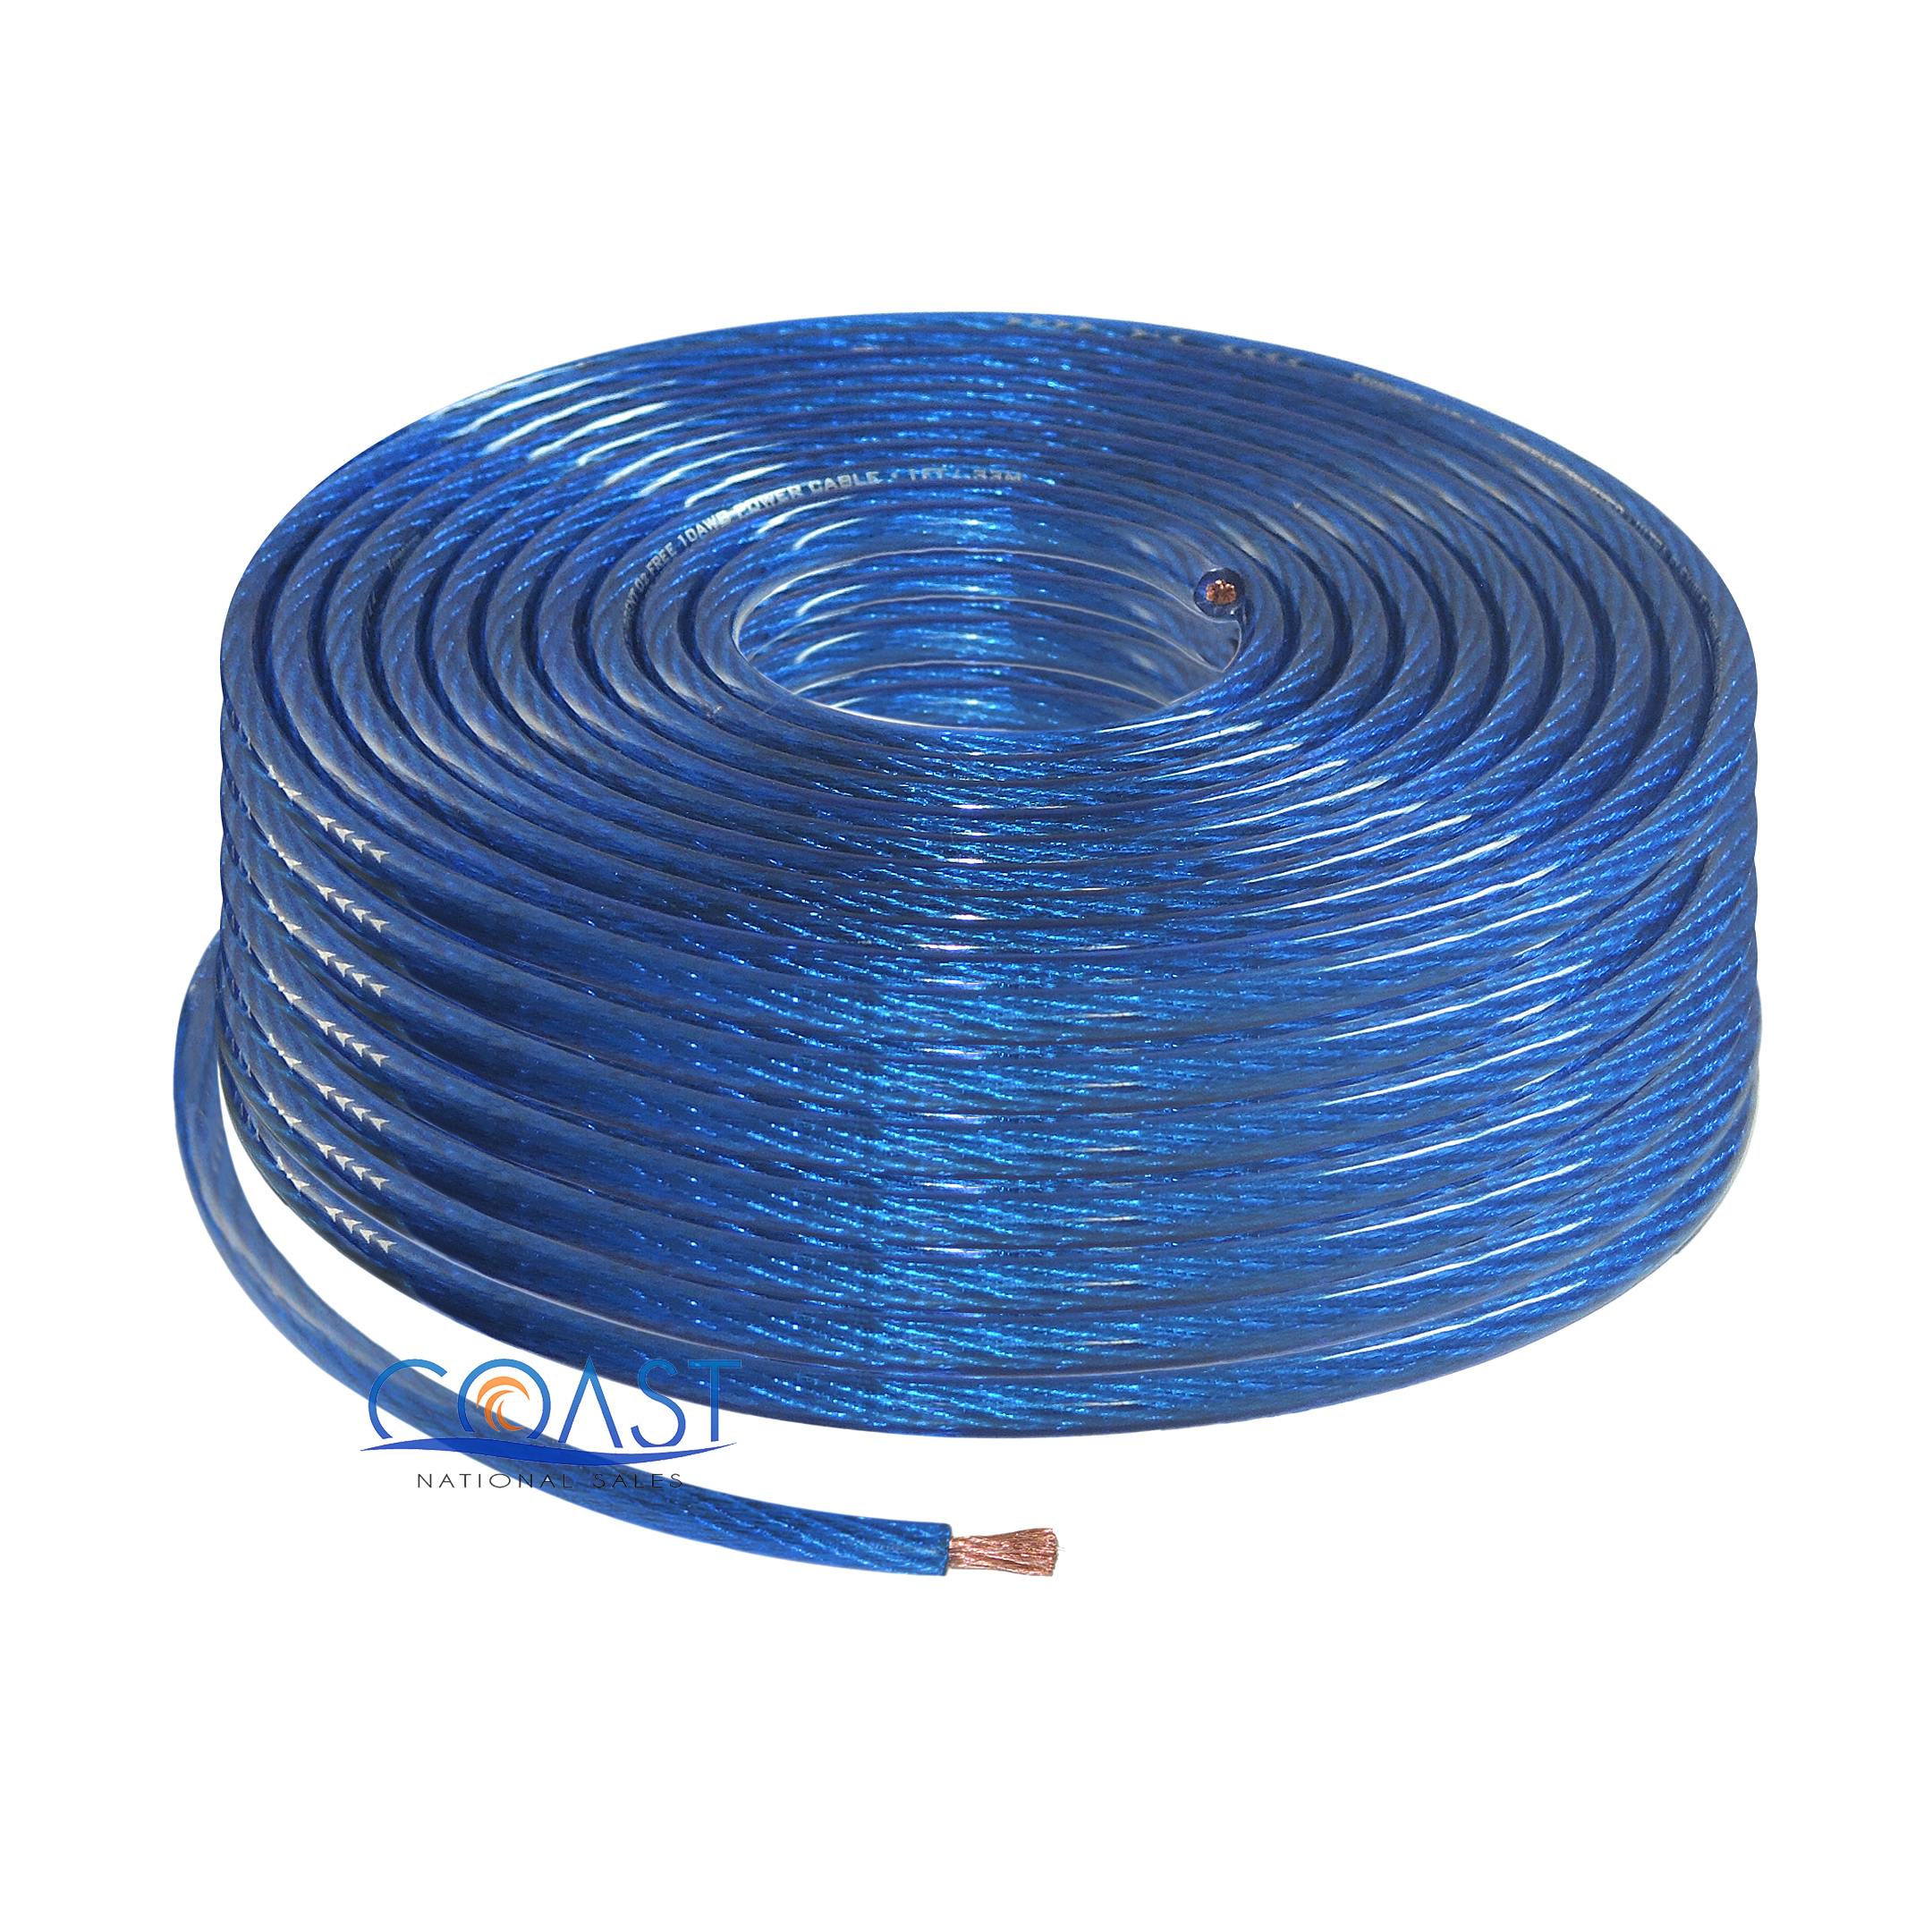 De S About Ofc Full Copper Fine Stranded 8 Gauge Awg Blue Power Ground Wire Cable 100ft